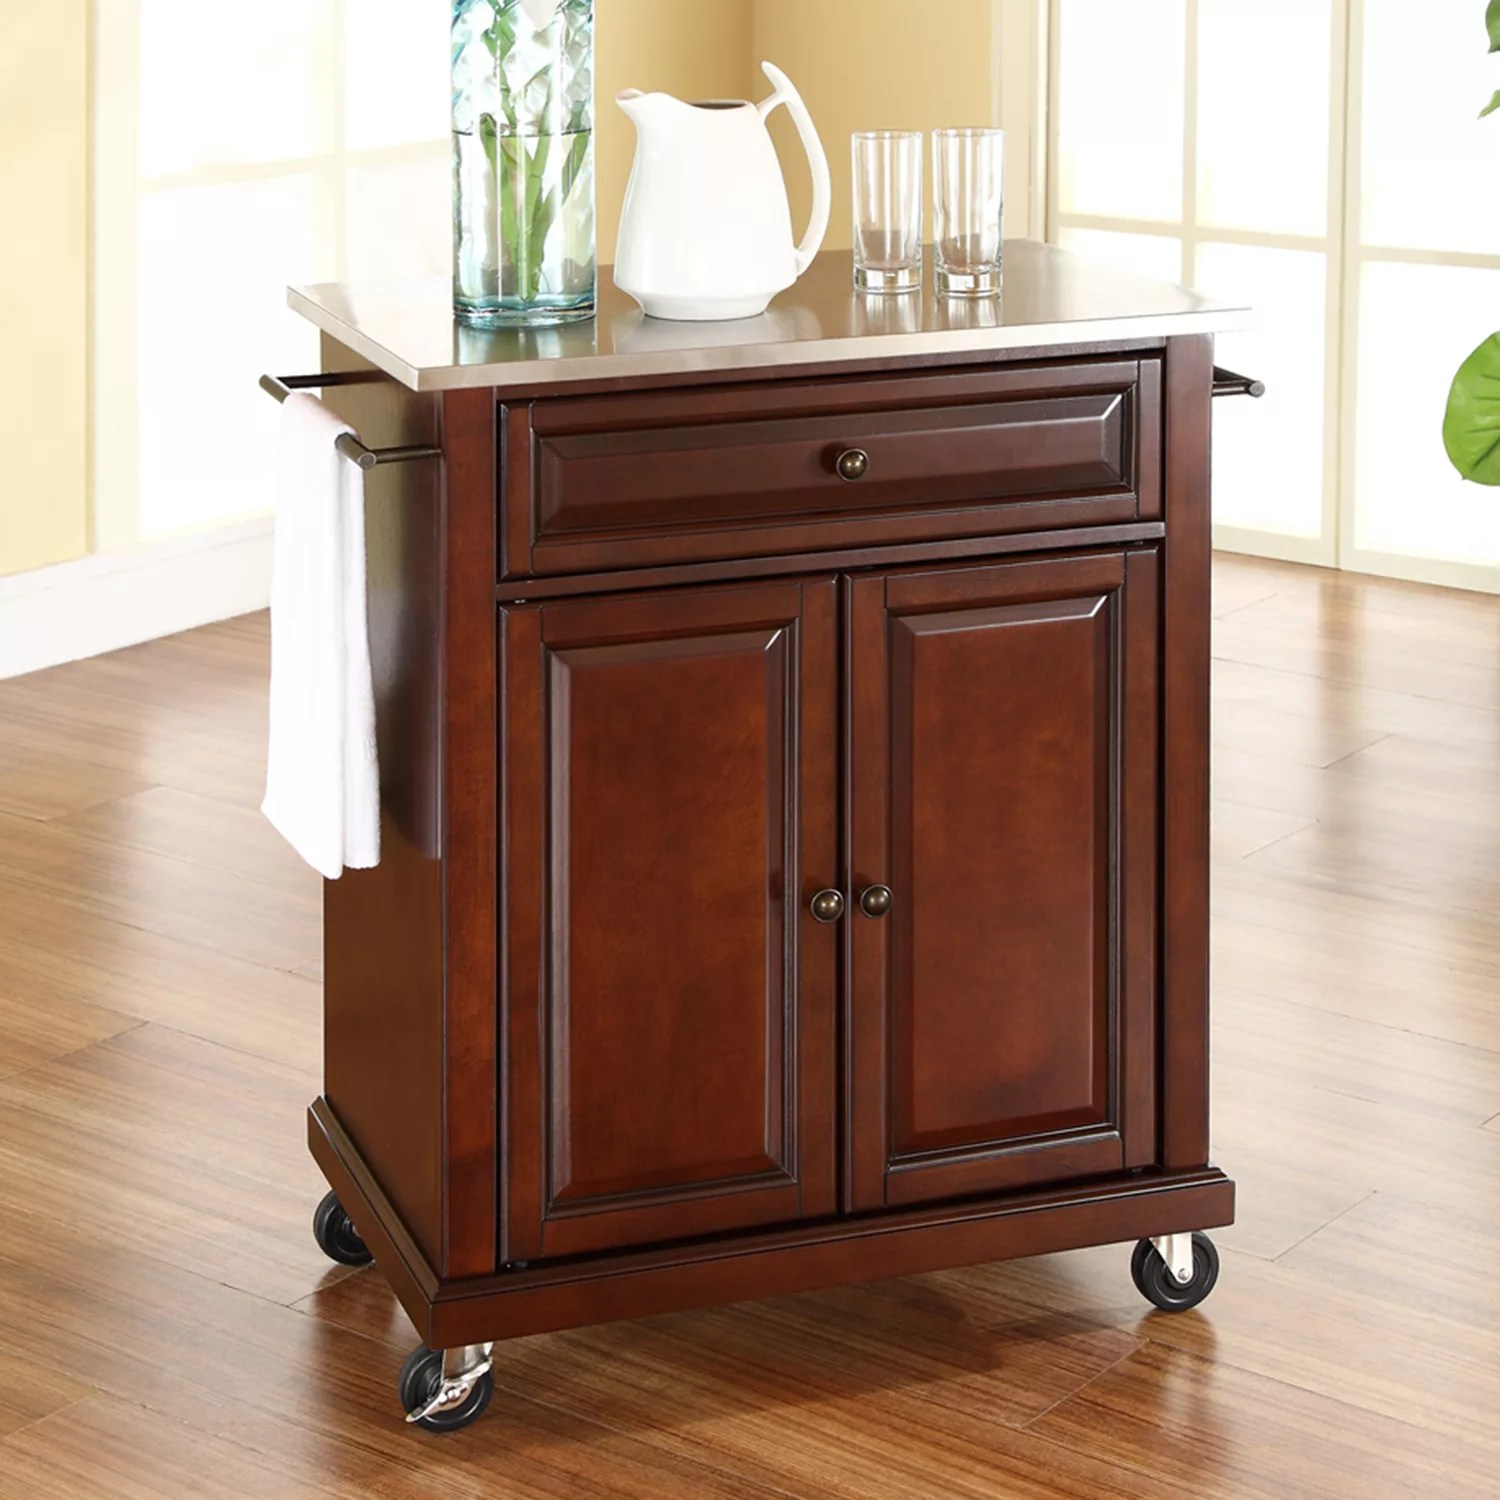 kitchen carts and islands how to build a cabinet kohl s crosley furniture stainless steel top island cart